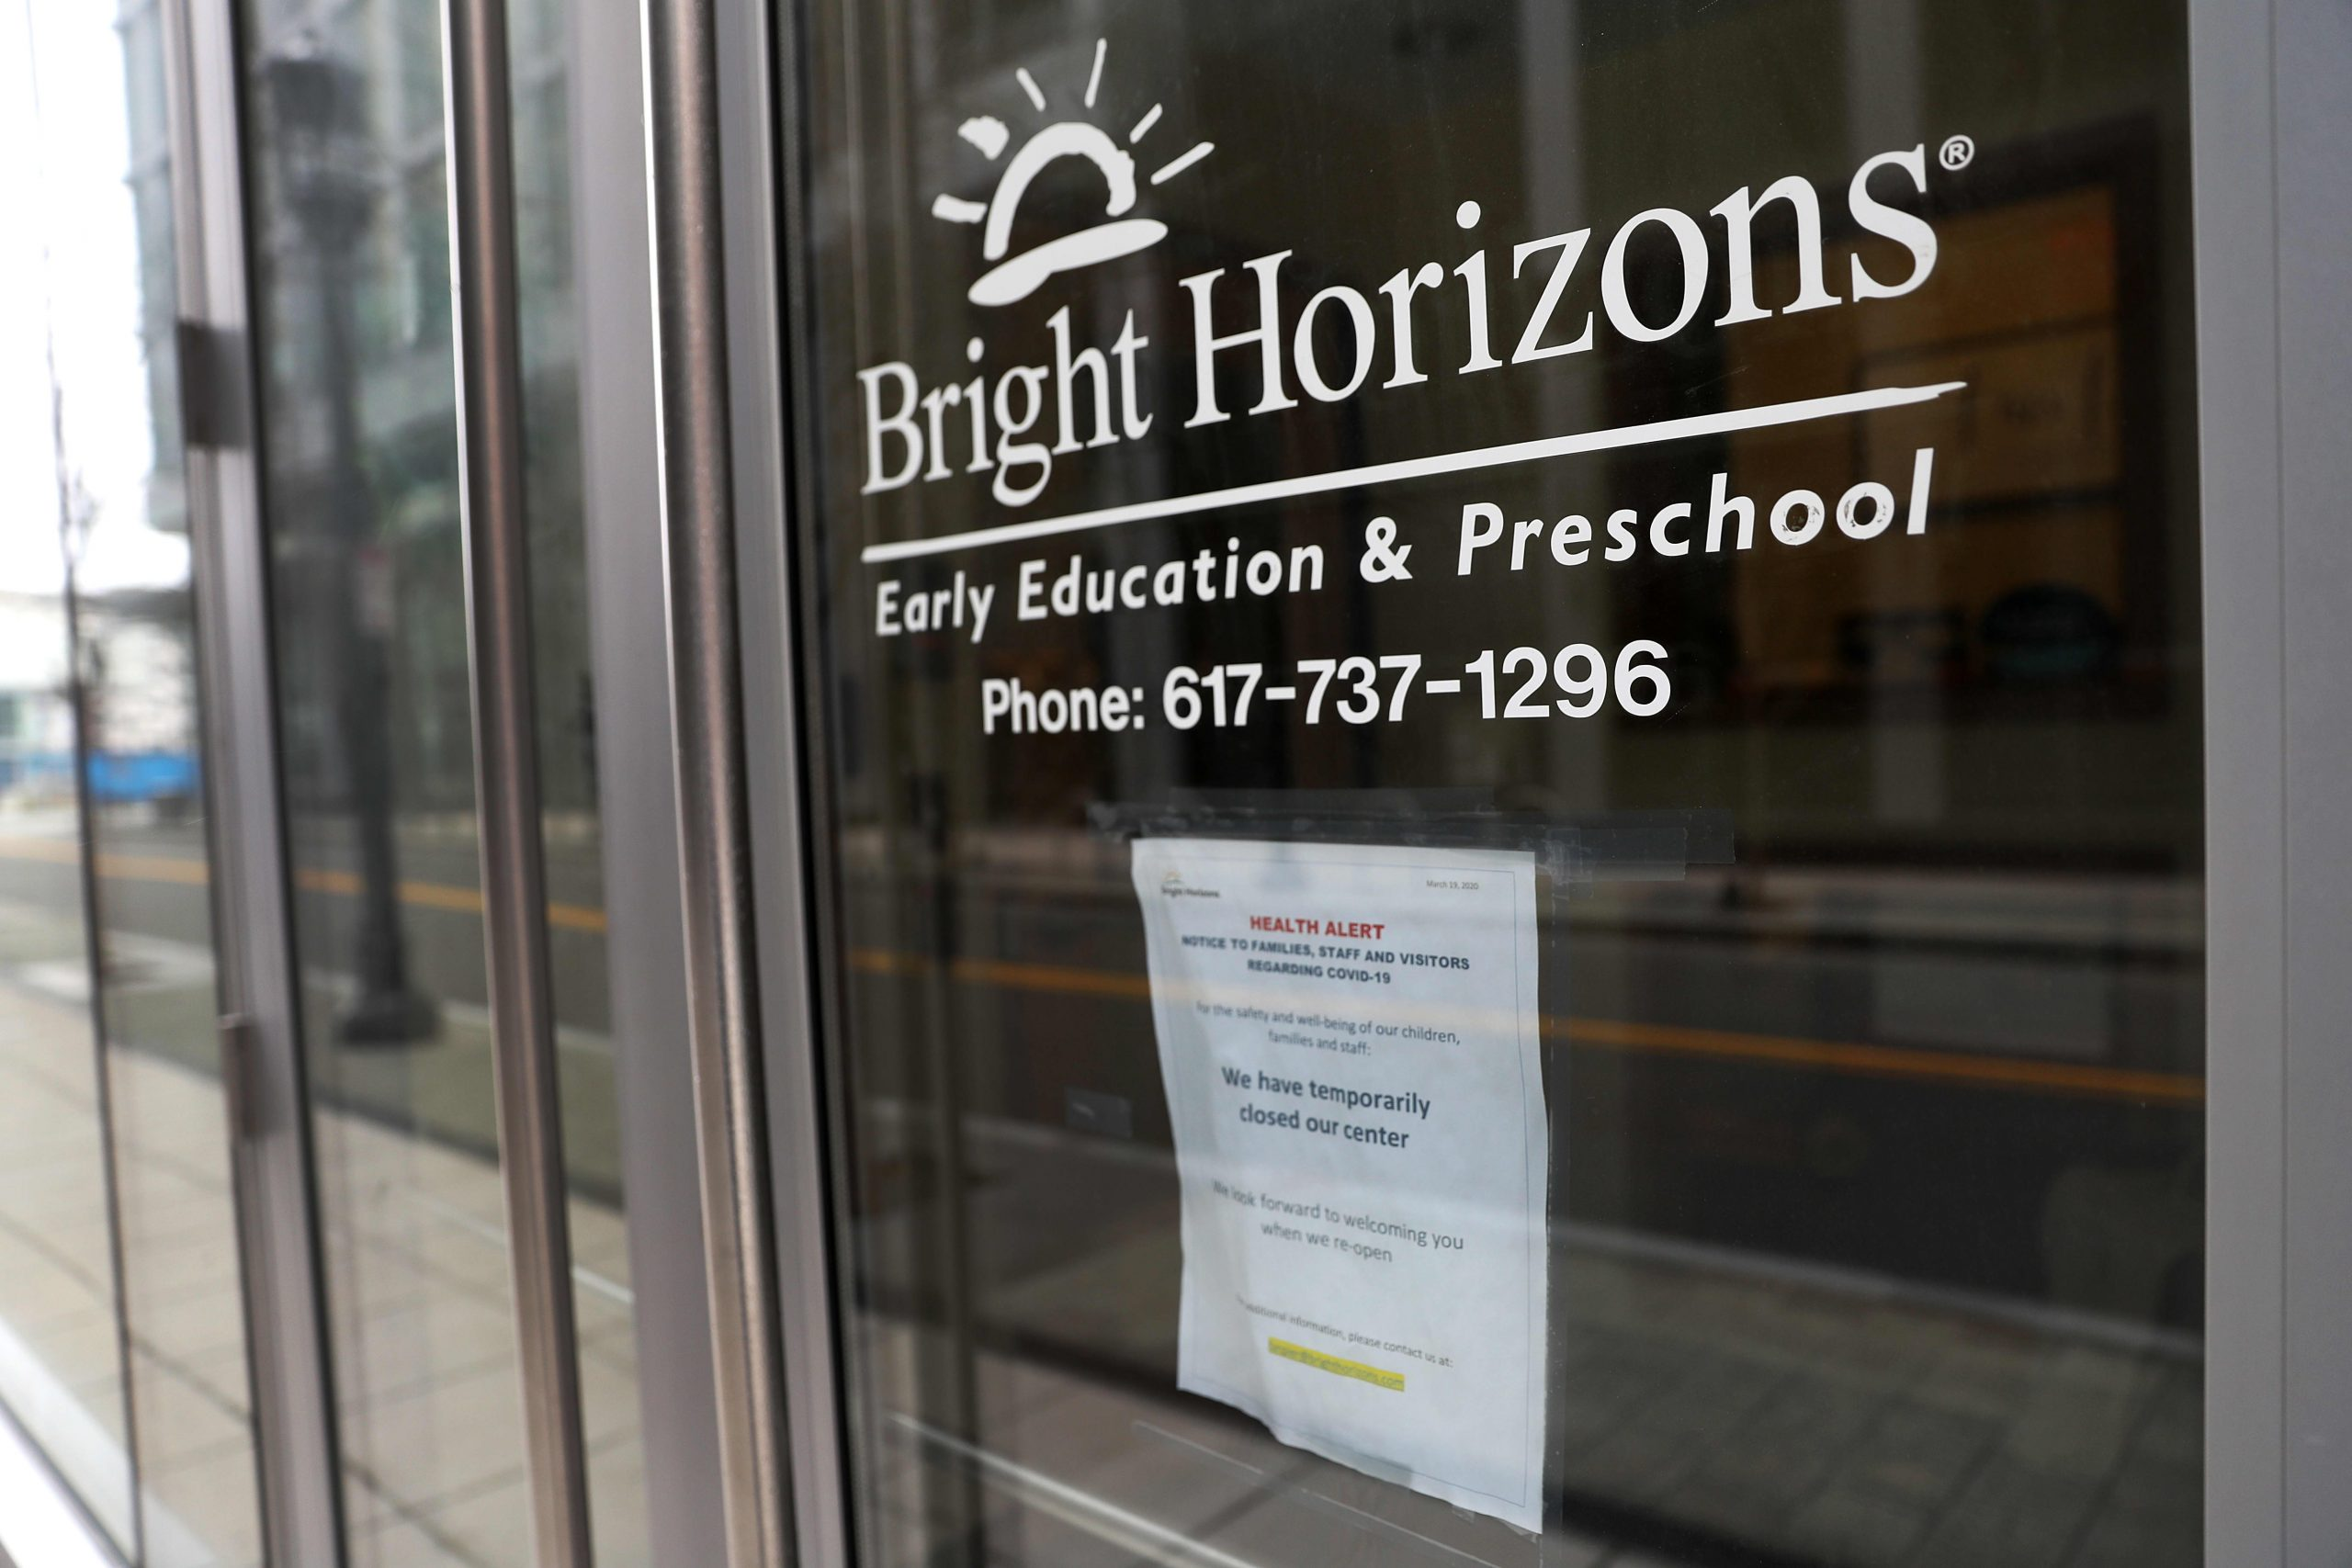 Employers offer stipends for babysitting and tutoring to sweeten child-care benefits and win over workers